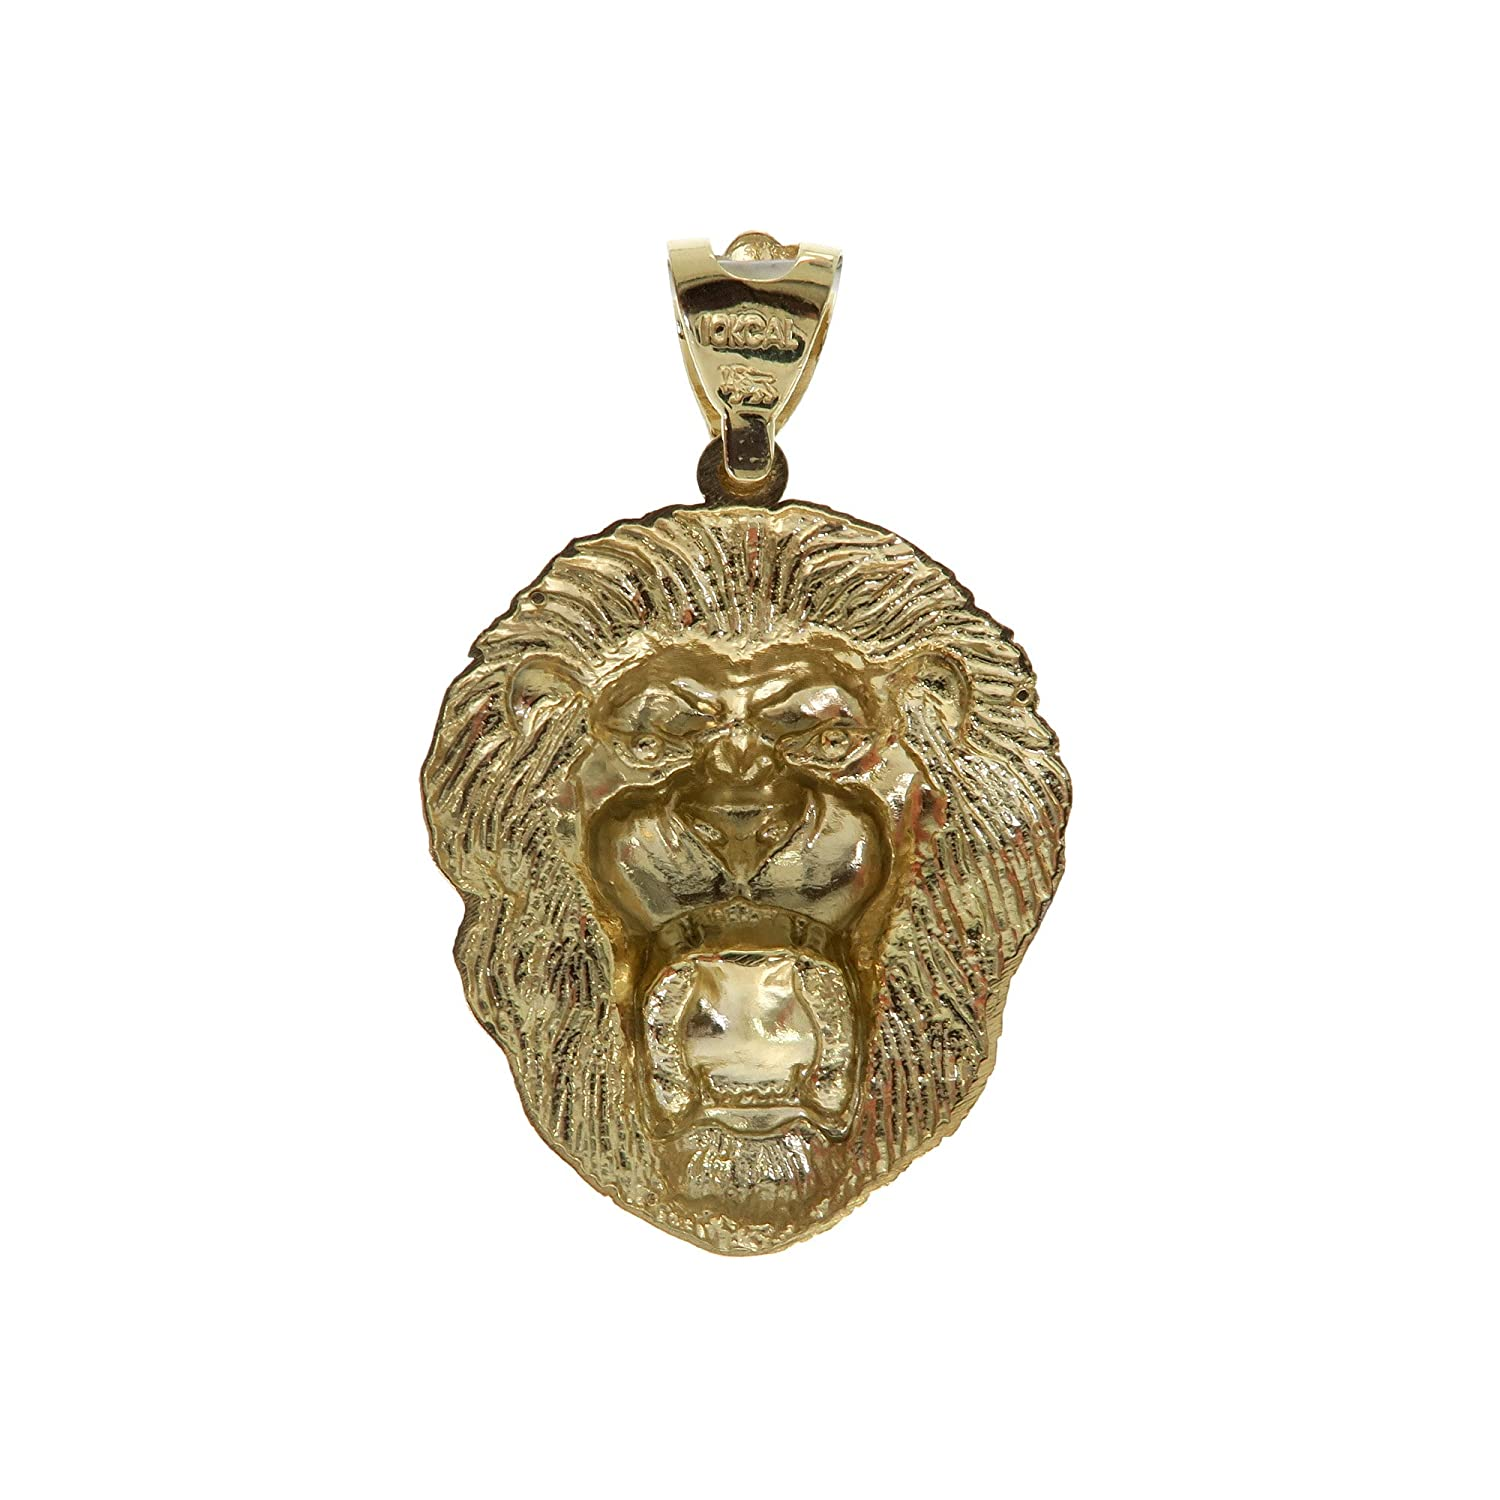 Traxnyc Genuine Stamped Authentic 10K Yellow Two-Tone Gold Charm Pendant Hip Hop Jewelry Gift